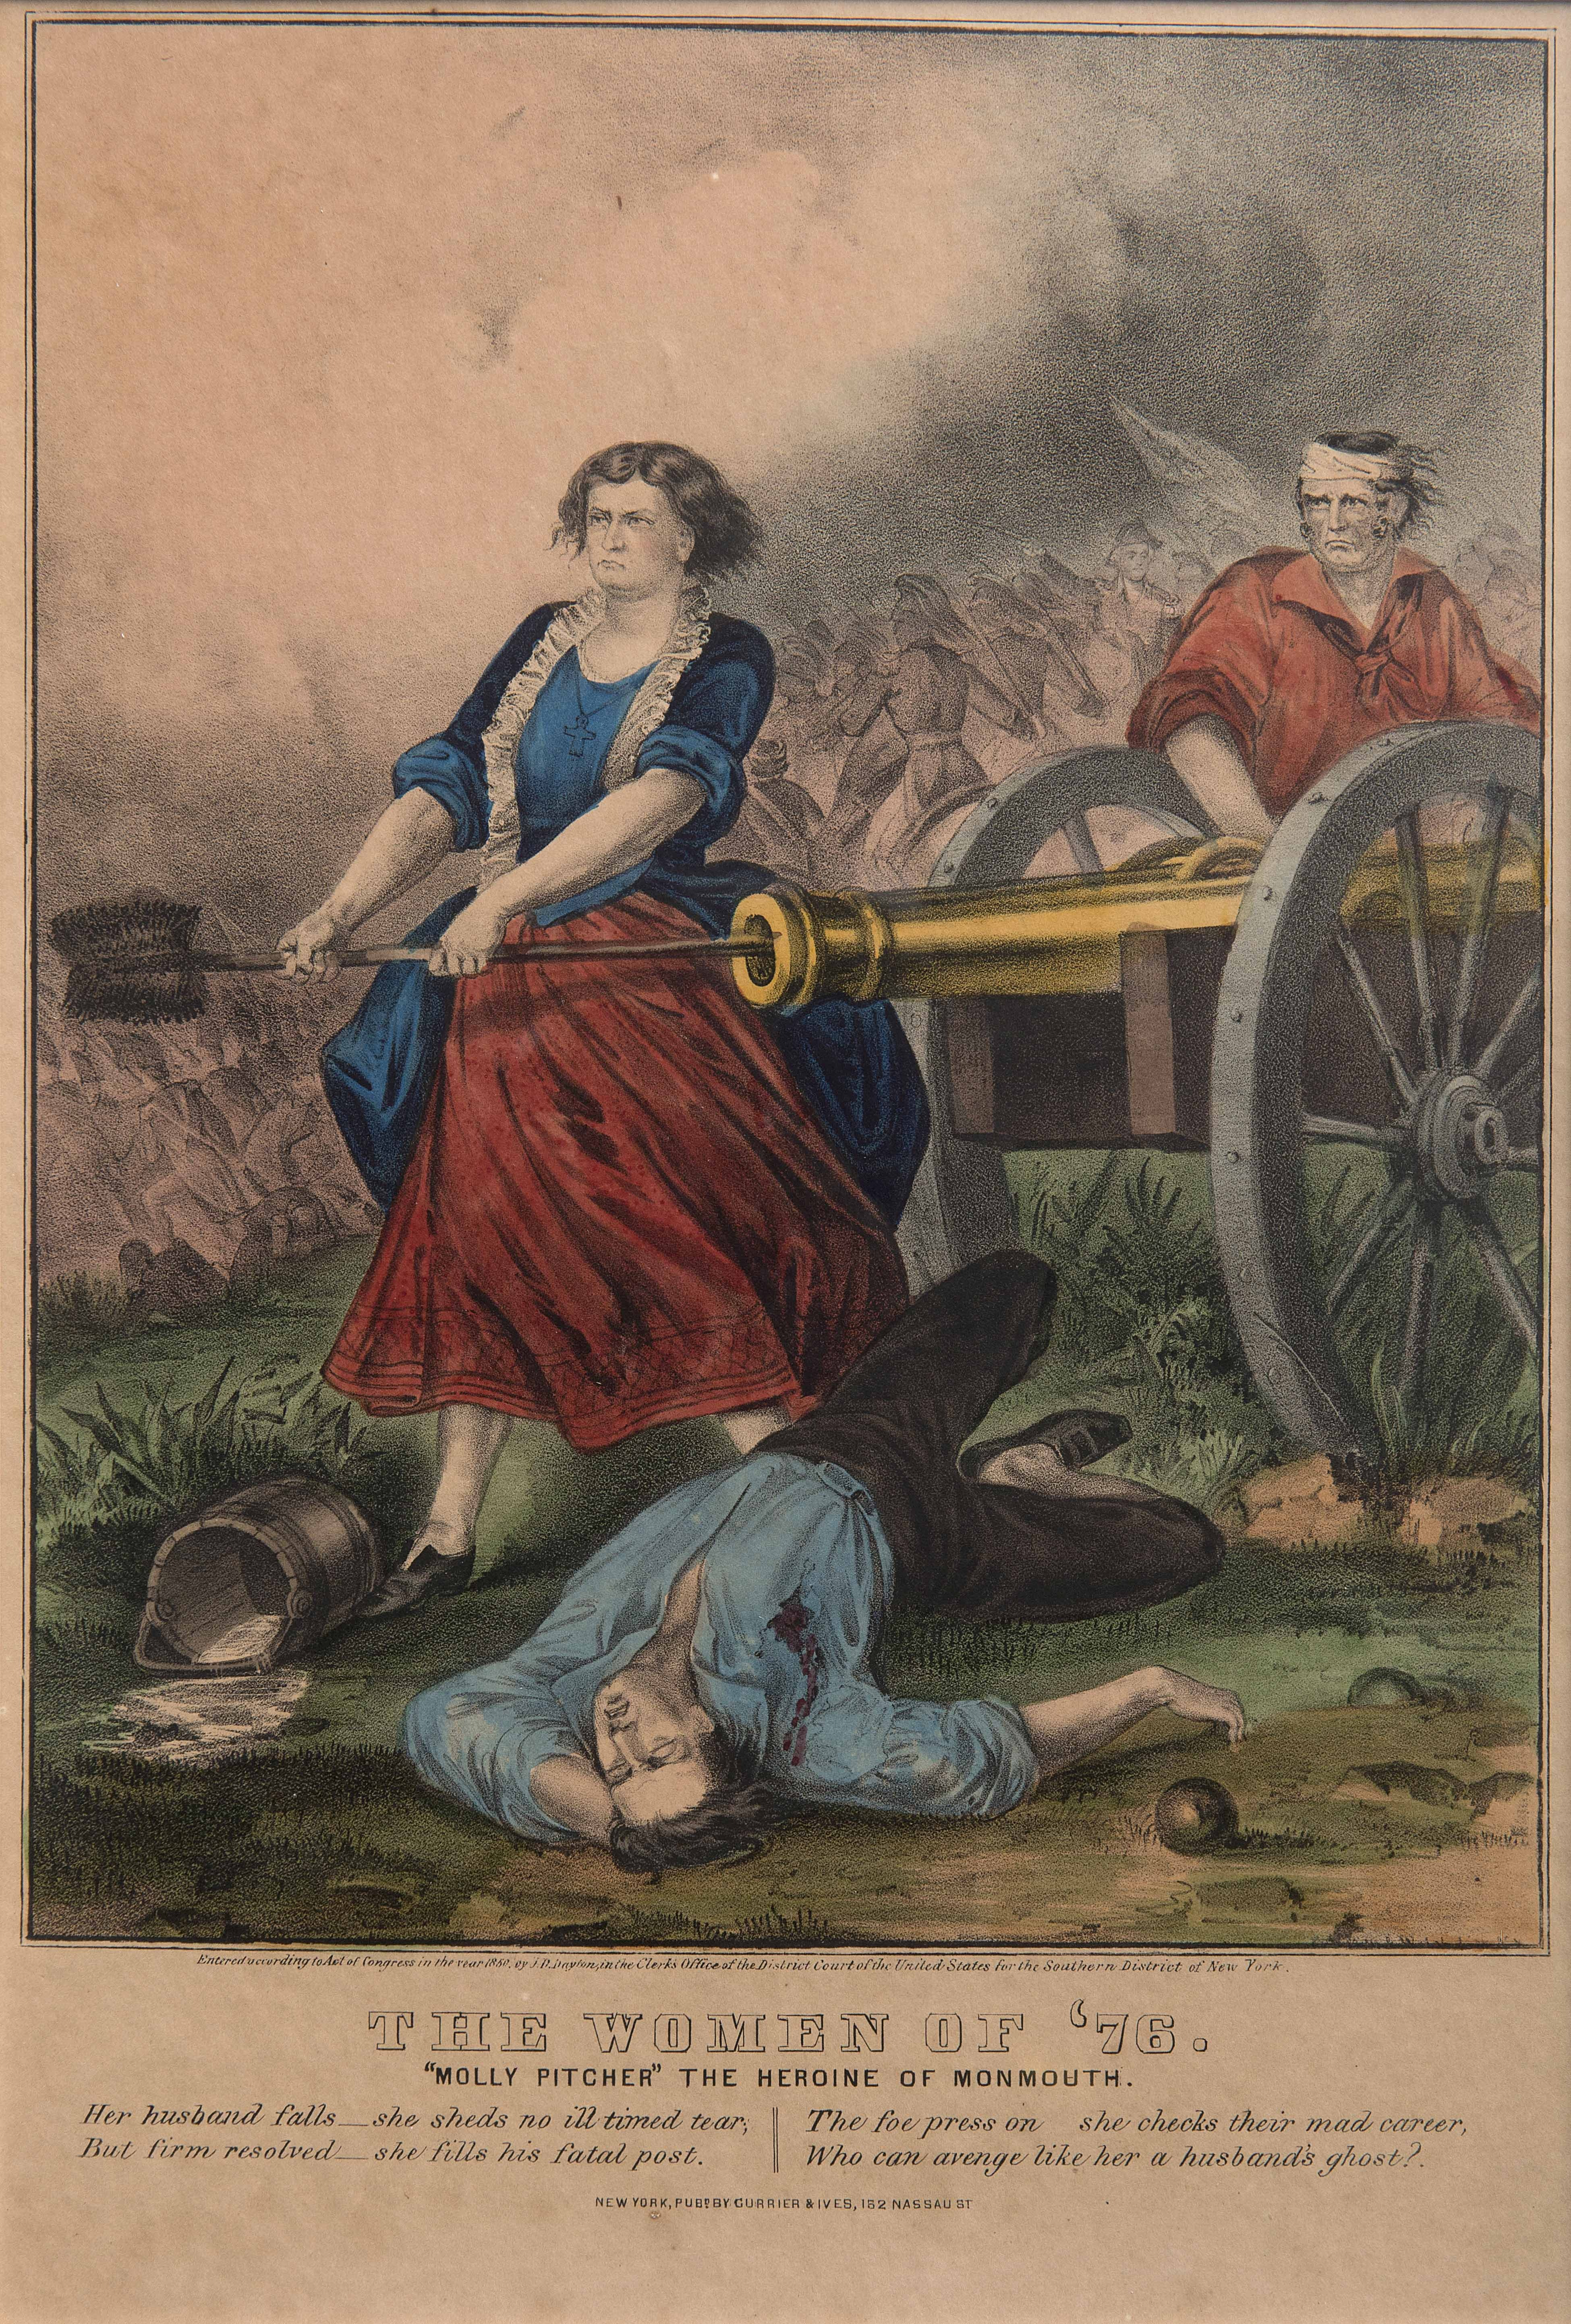 Painting of The Heroine of Monmouth (Molly Pitcher, 1876)